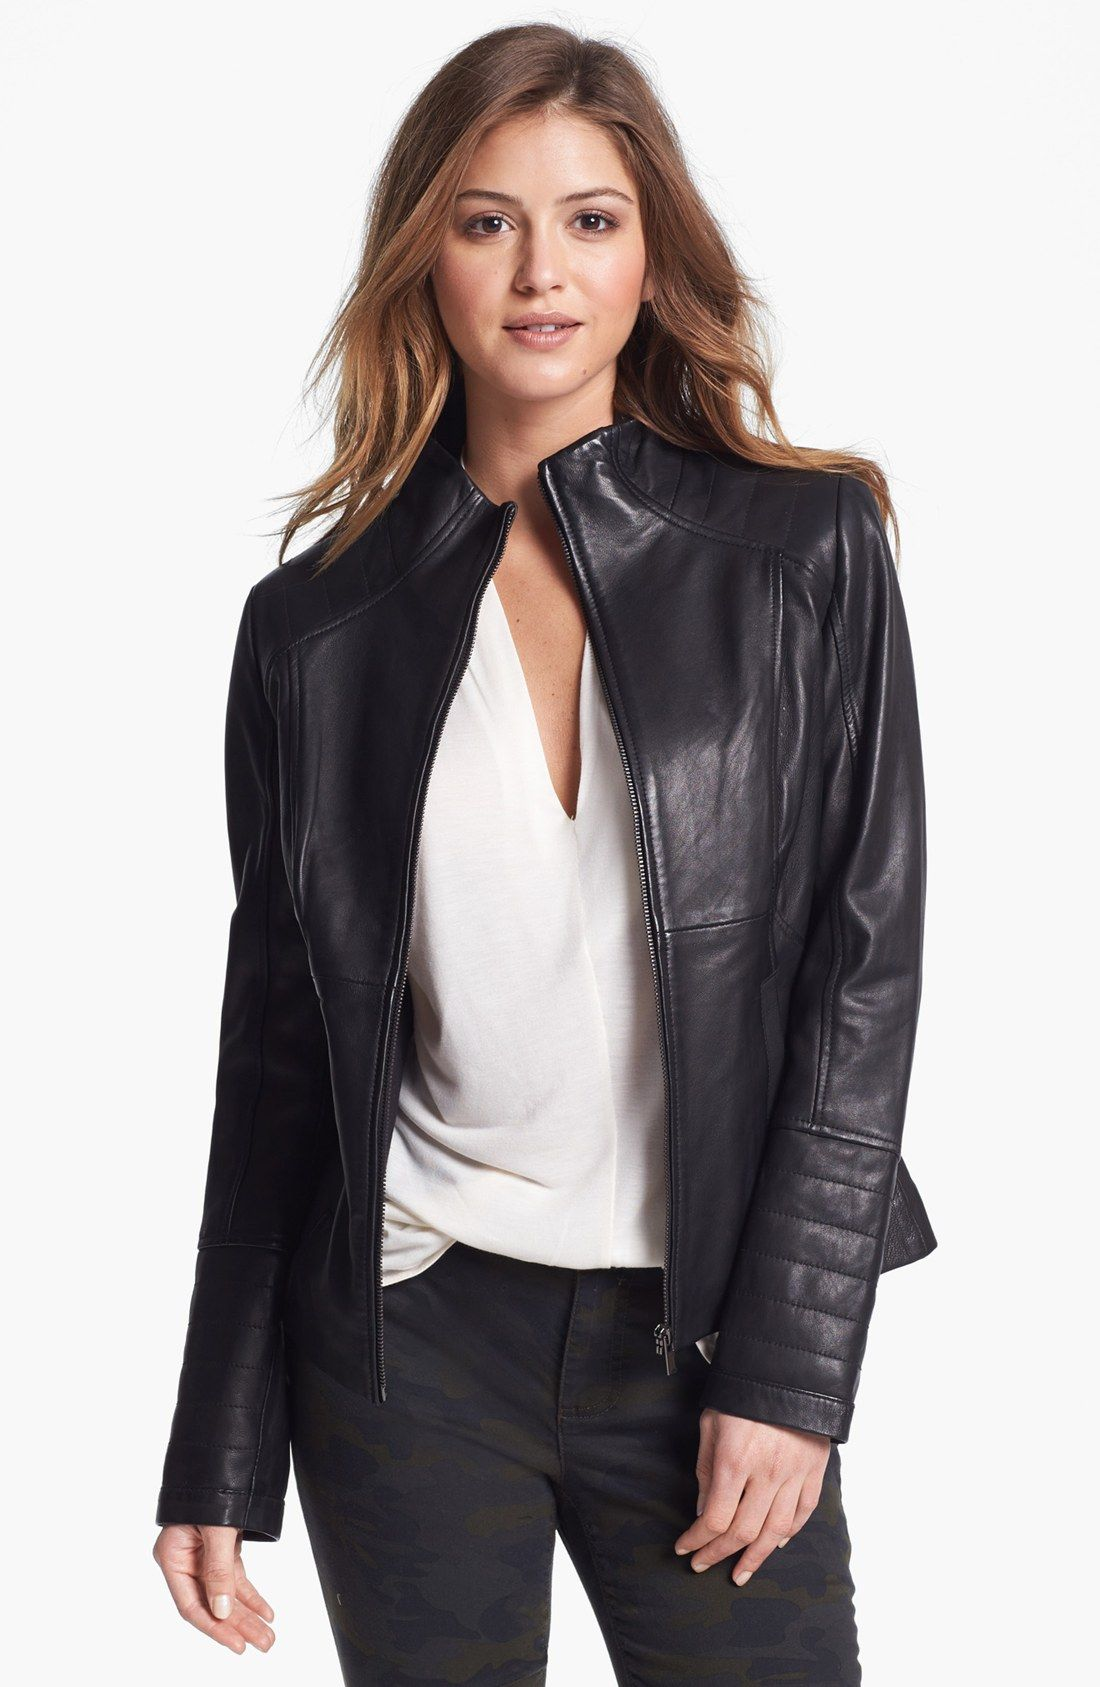 Women S Leather Jackets xwJWGb